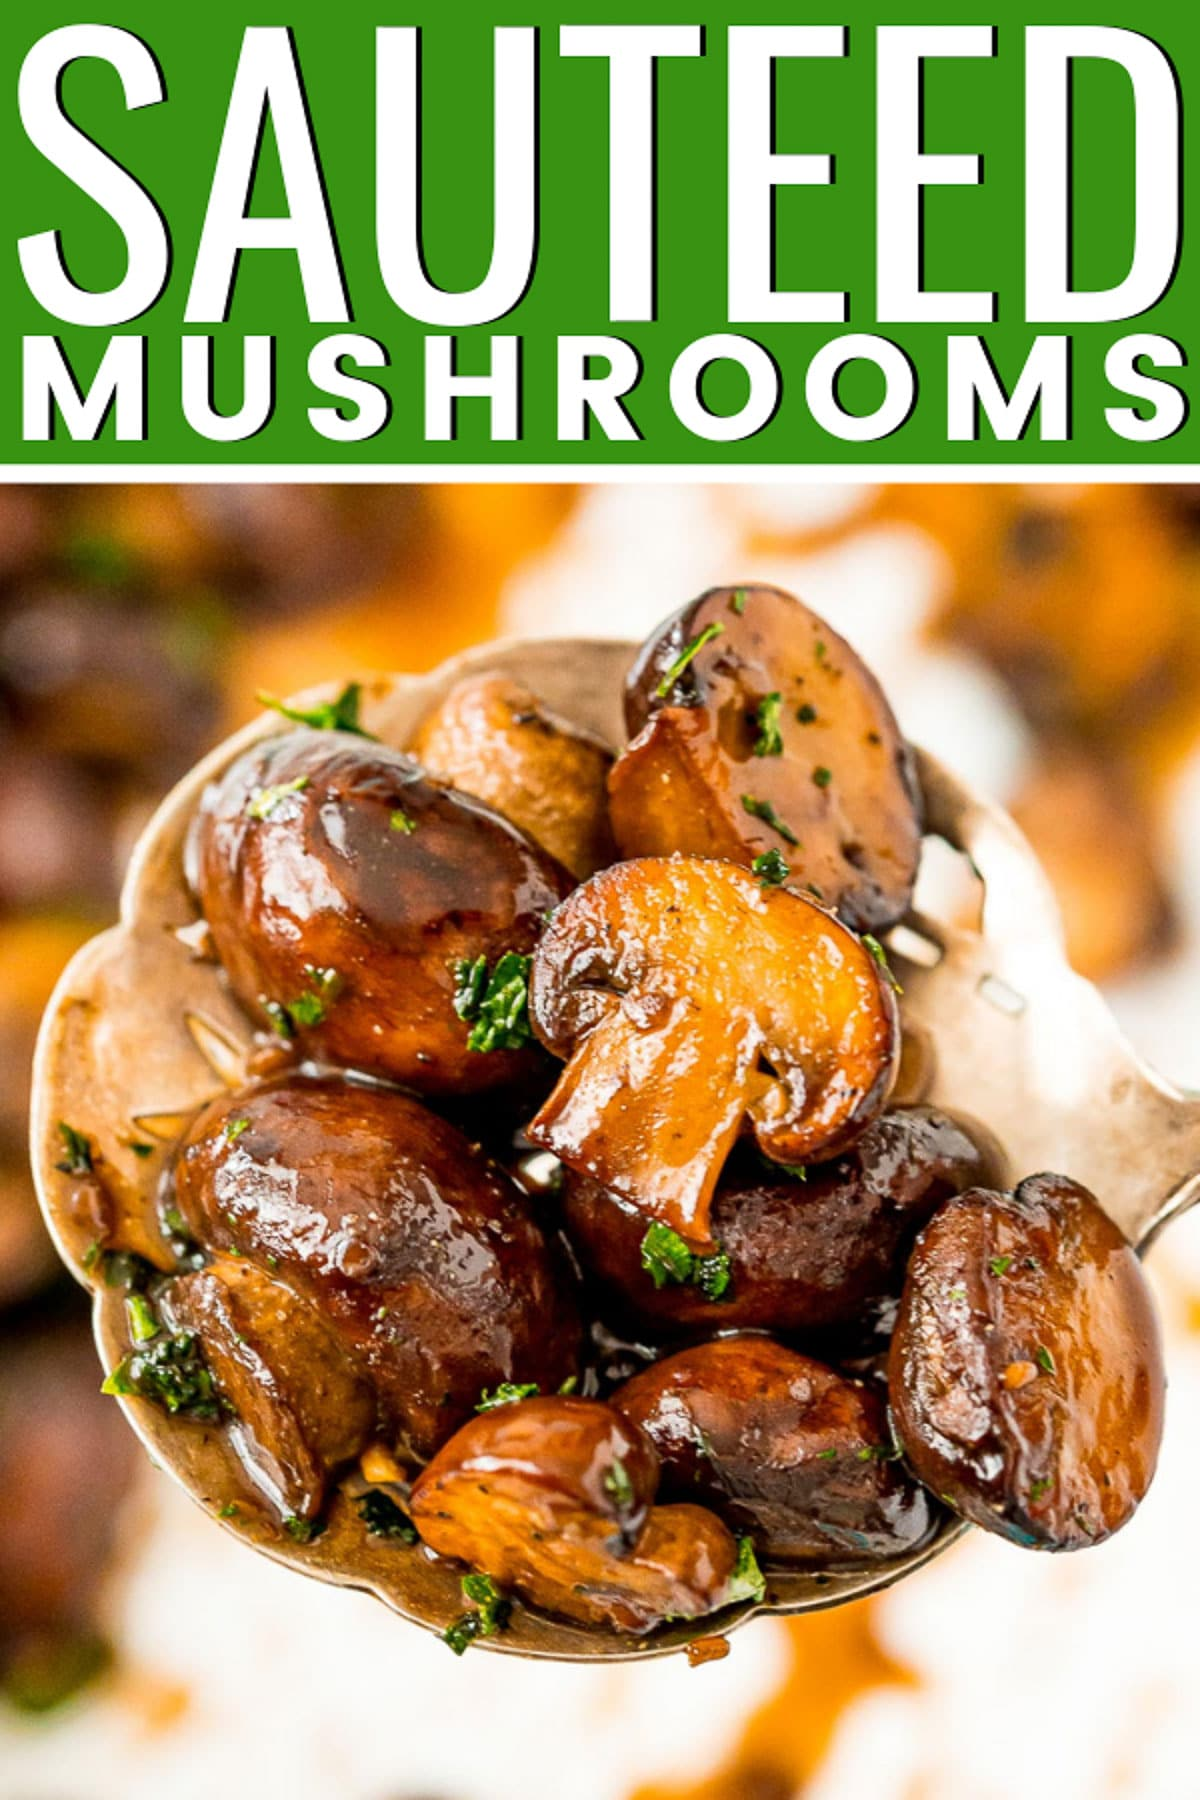 Sauteed Mushrooms are so easy to make! They are browned in butter and olive oil and seasoned with garlic and salt. A glaze made of balsamic, brown sugar, and black pepper make this side dish a total crowd-pleaser.   via @sugarandsoulco